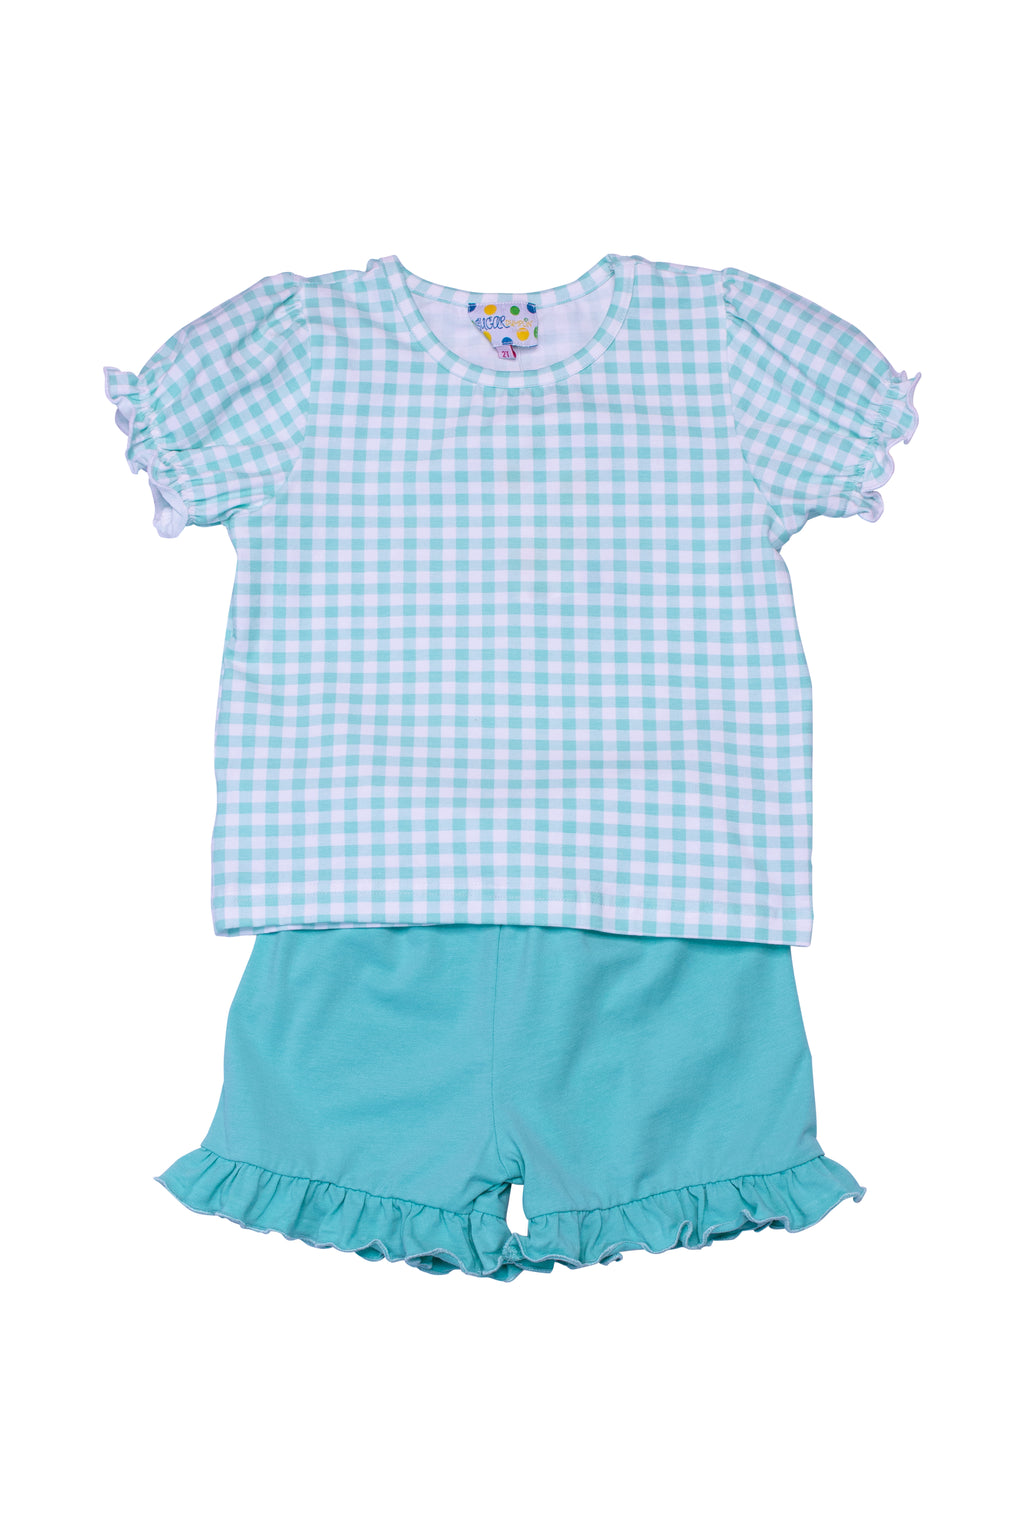 Girls Knit Mint Check Shorts Set